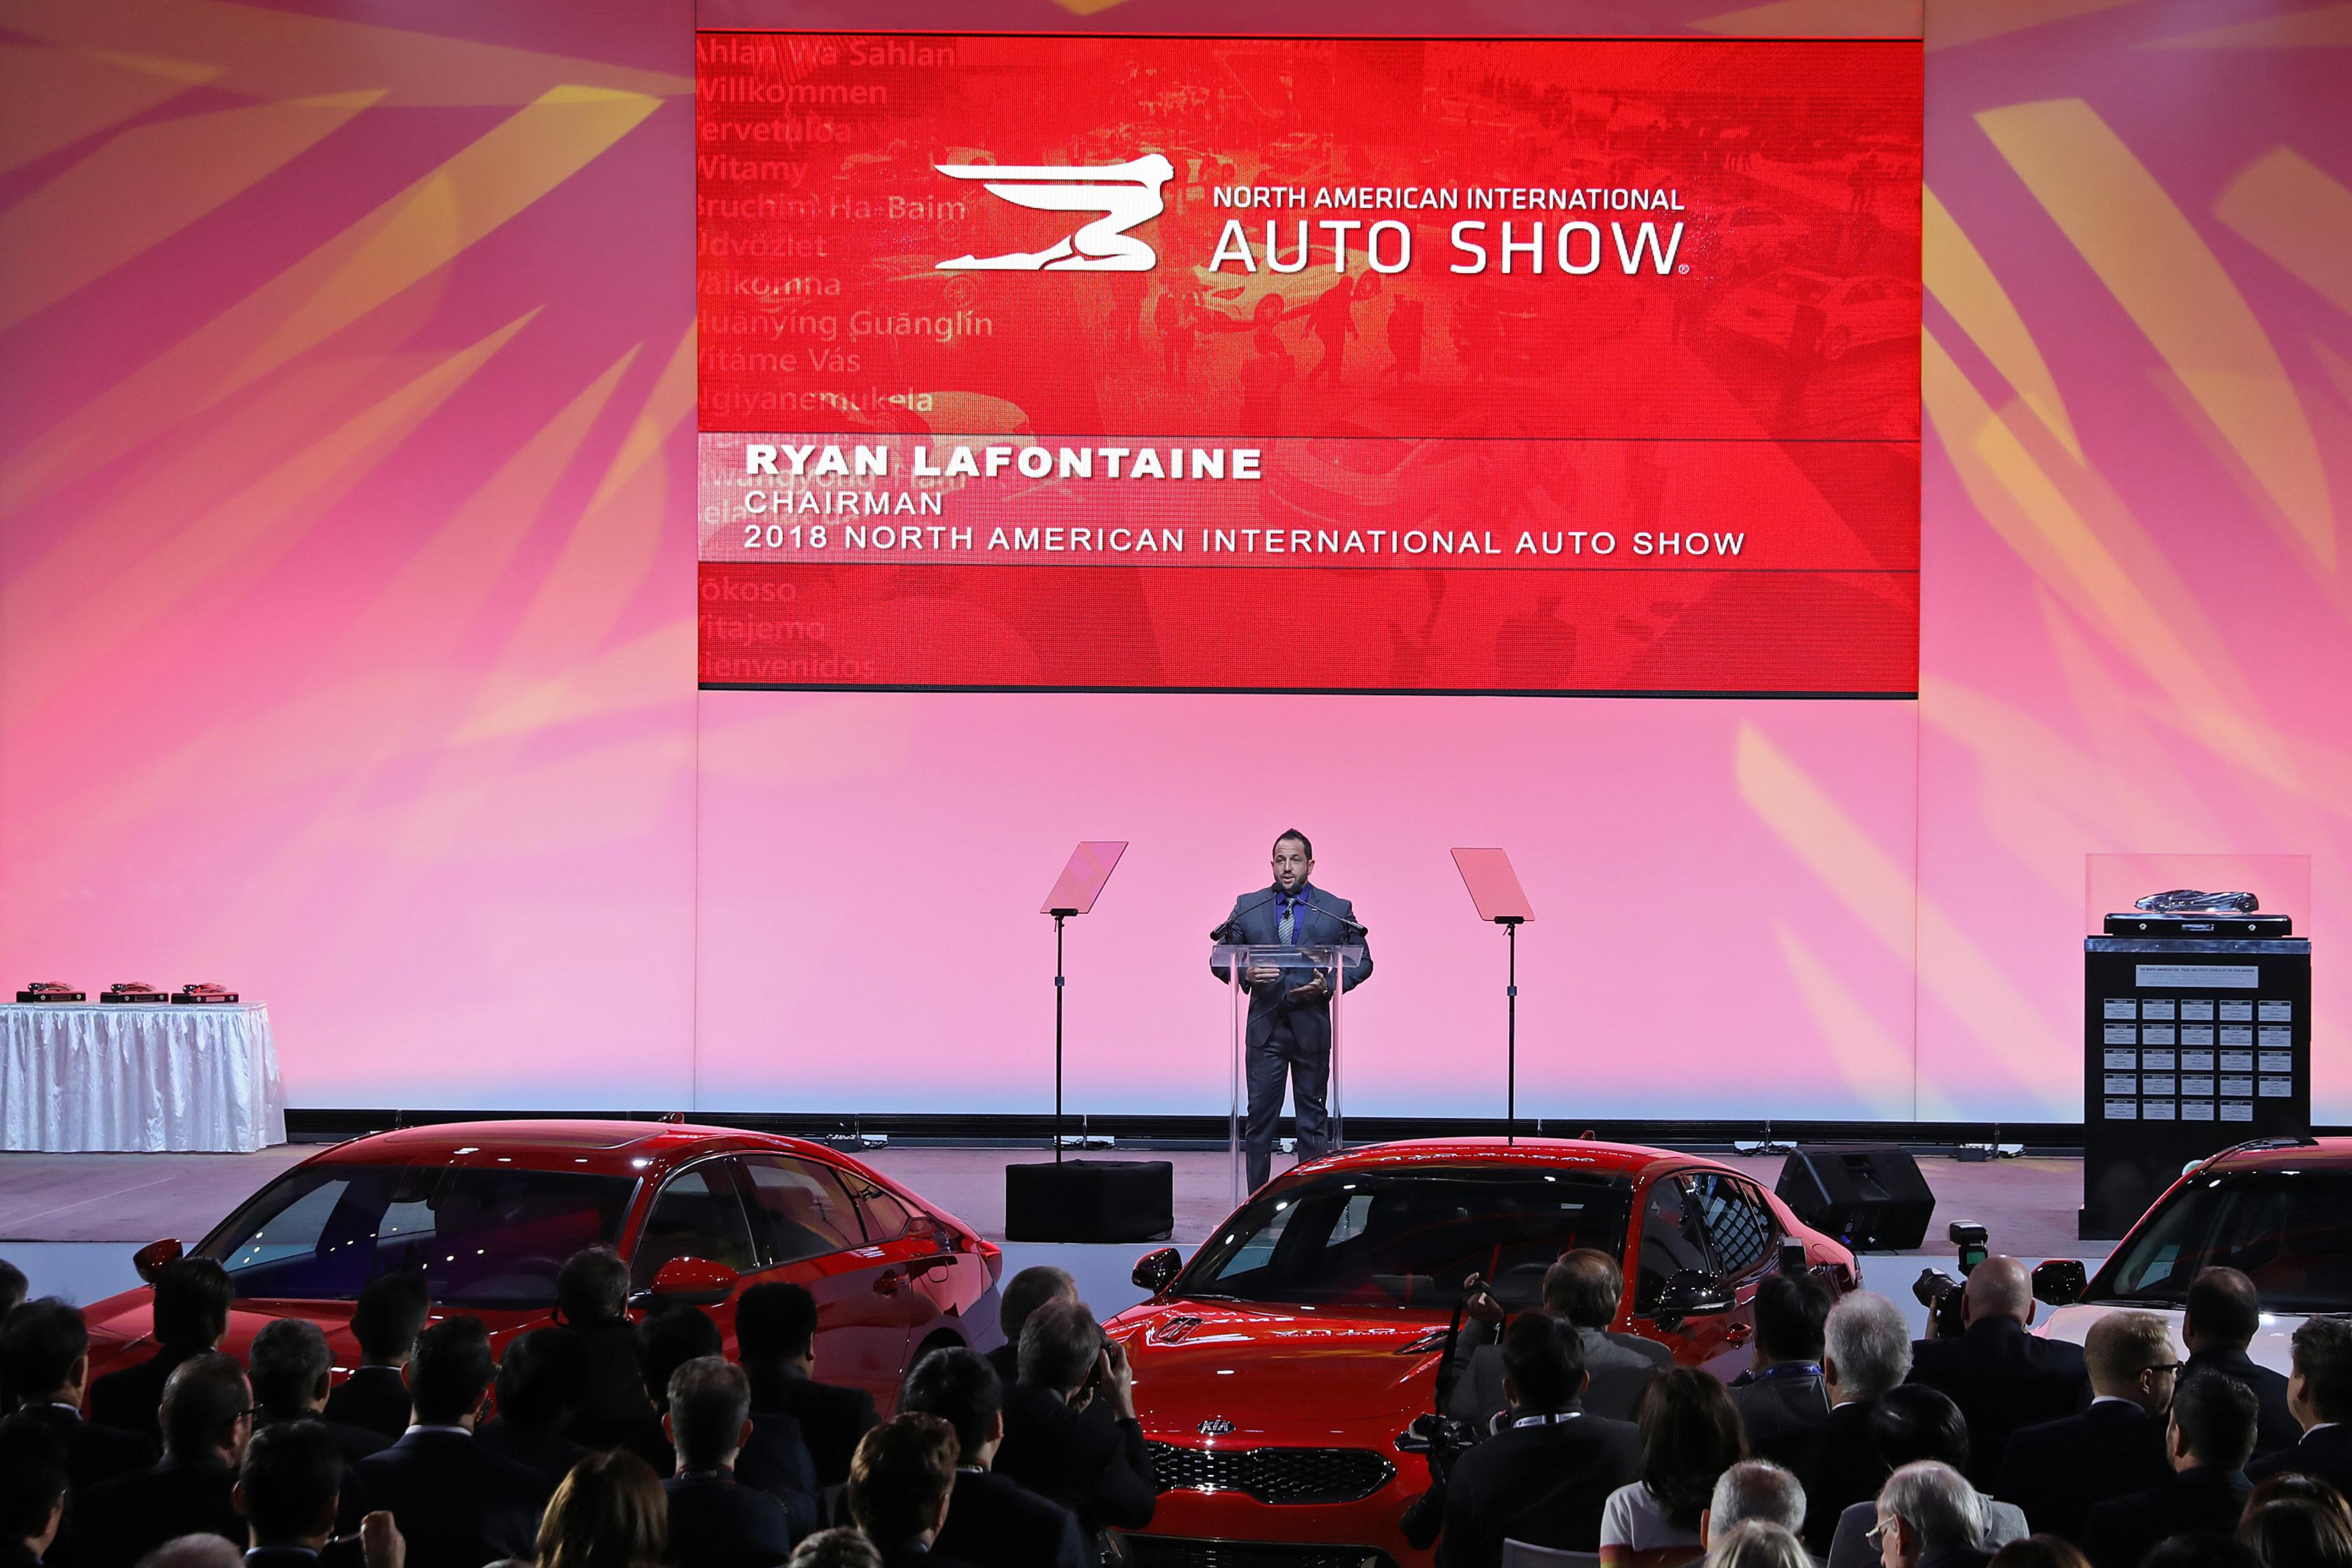 """It's just huge we have a million square feet all under one roof plenty of space to display cars,"" said NAIAS 2018 Chairman Ryan Lafontaine. (Photo: NAIAS)"